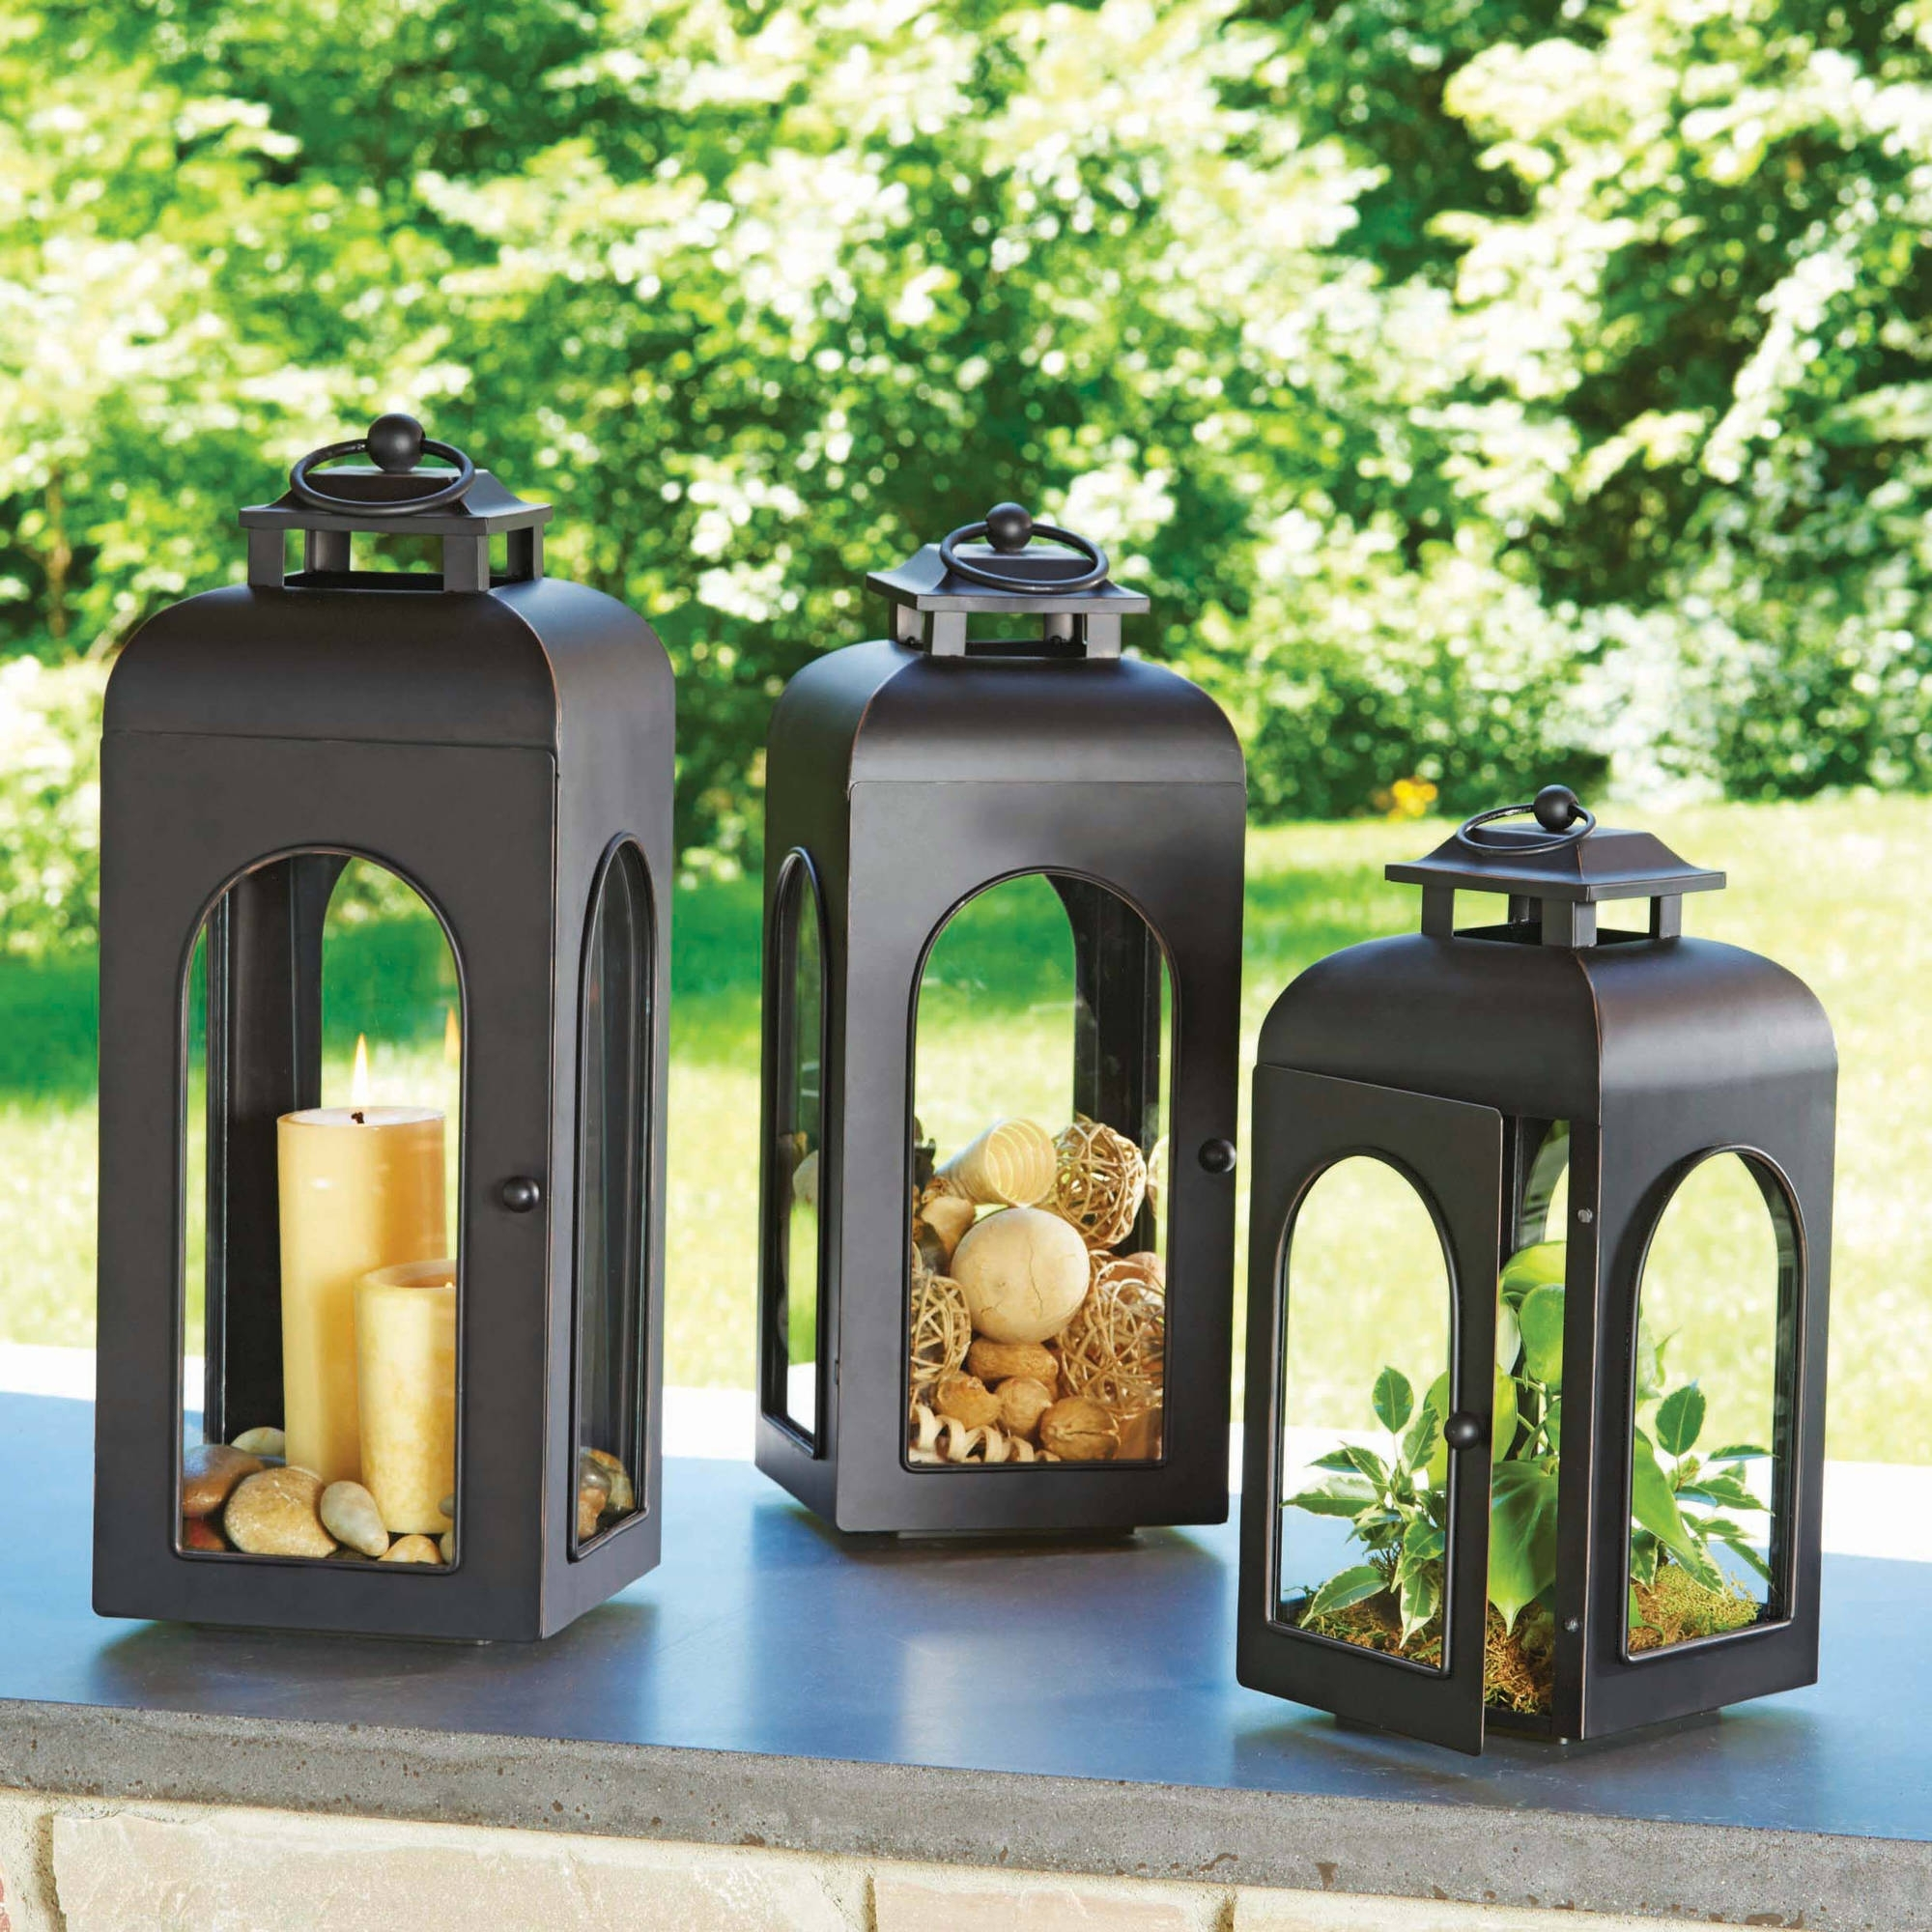 Better Homes And Gardens Domed Metal Outdoor Lantern – Walmart For Metal Outdoor Lanterns (View 3 of 20)